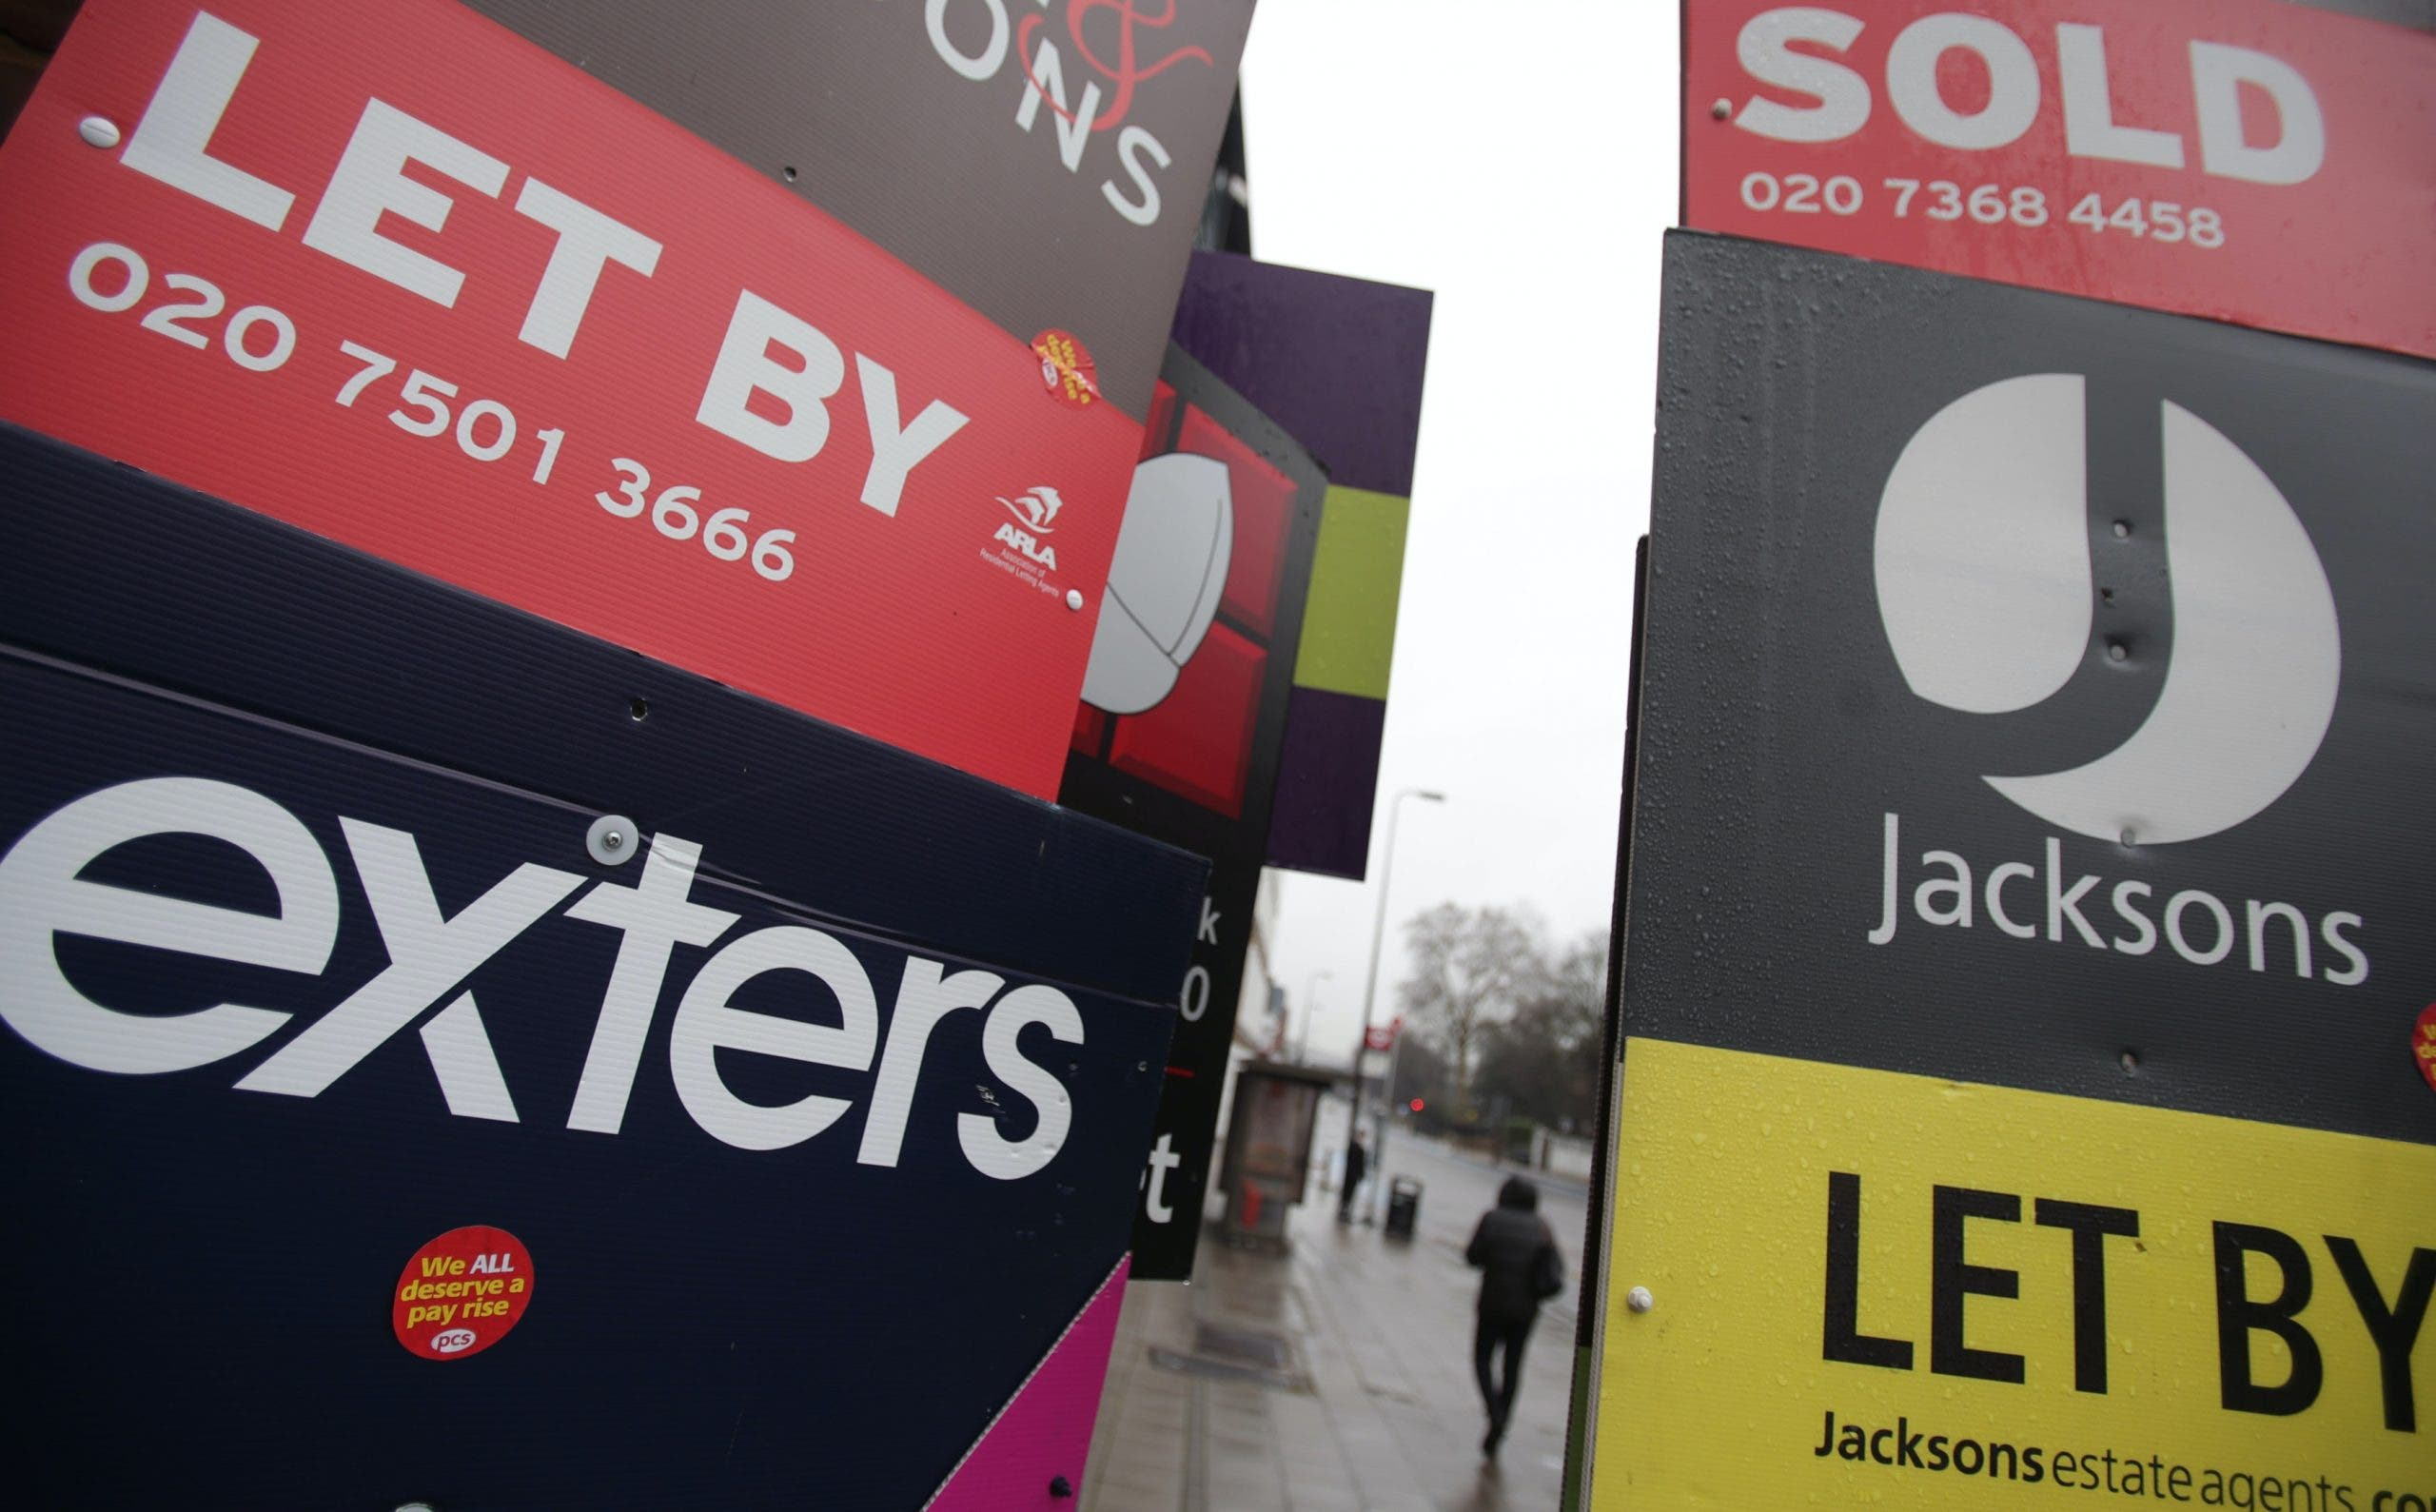 Millions of UK households worried about paying rent over winter, survey finds